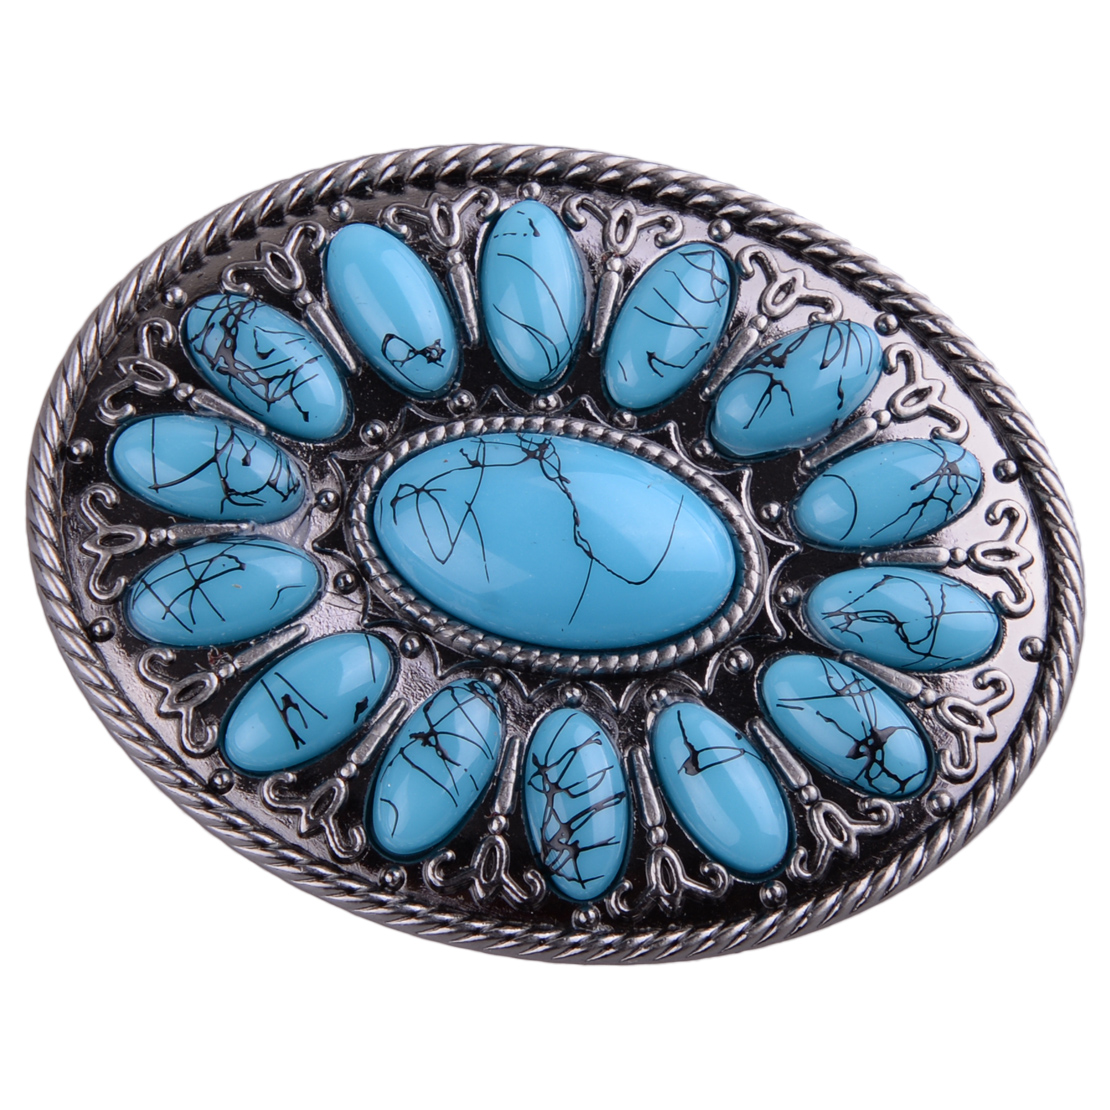 Vintage Retro Fake Turquoise Alloy Belt Buckle Men Women Western Cowboy Belt Accessory Christmas Gift